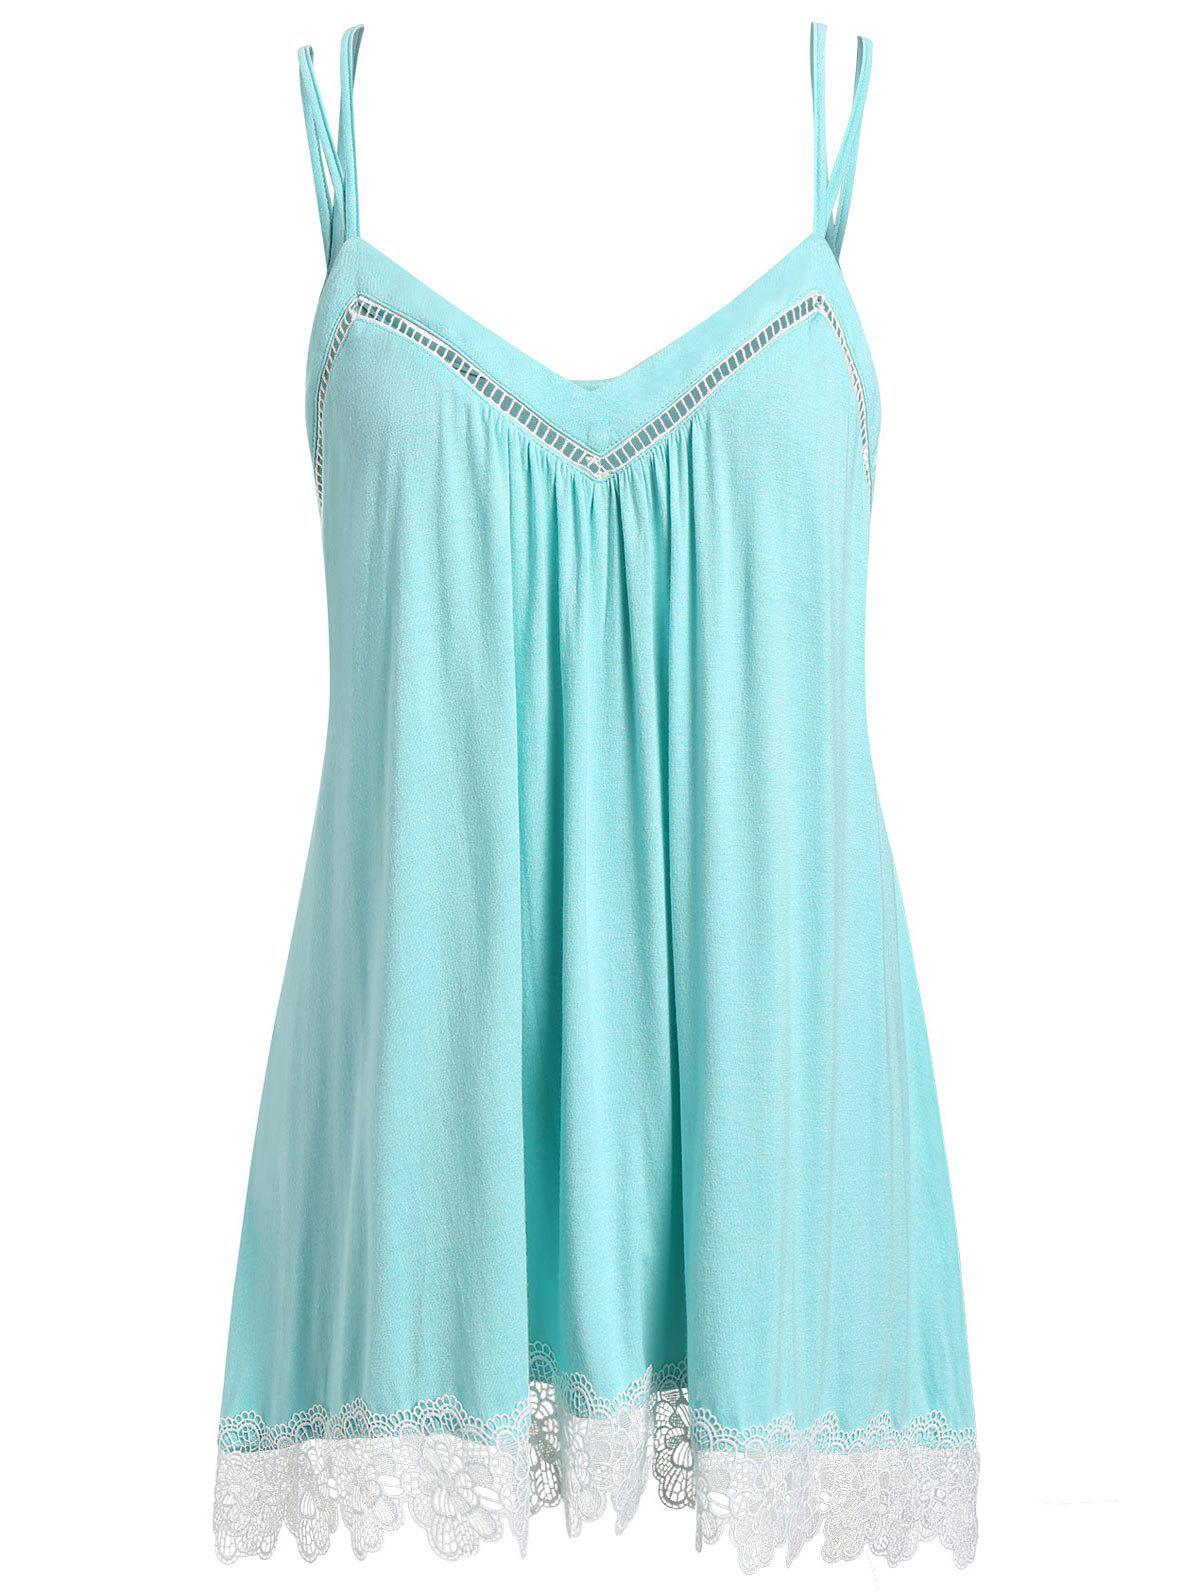 Plus Size Spaghetti Strap Lace Trim Tank Top - LIGHT SLATE 4X